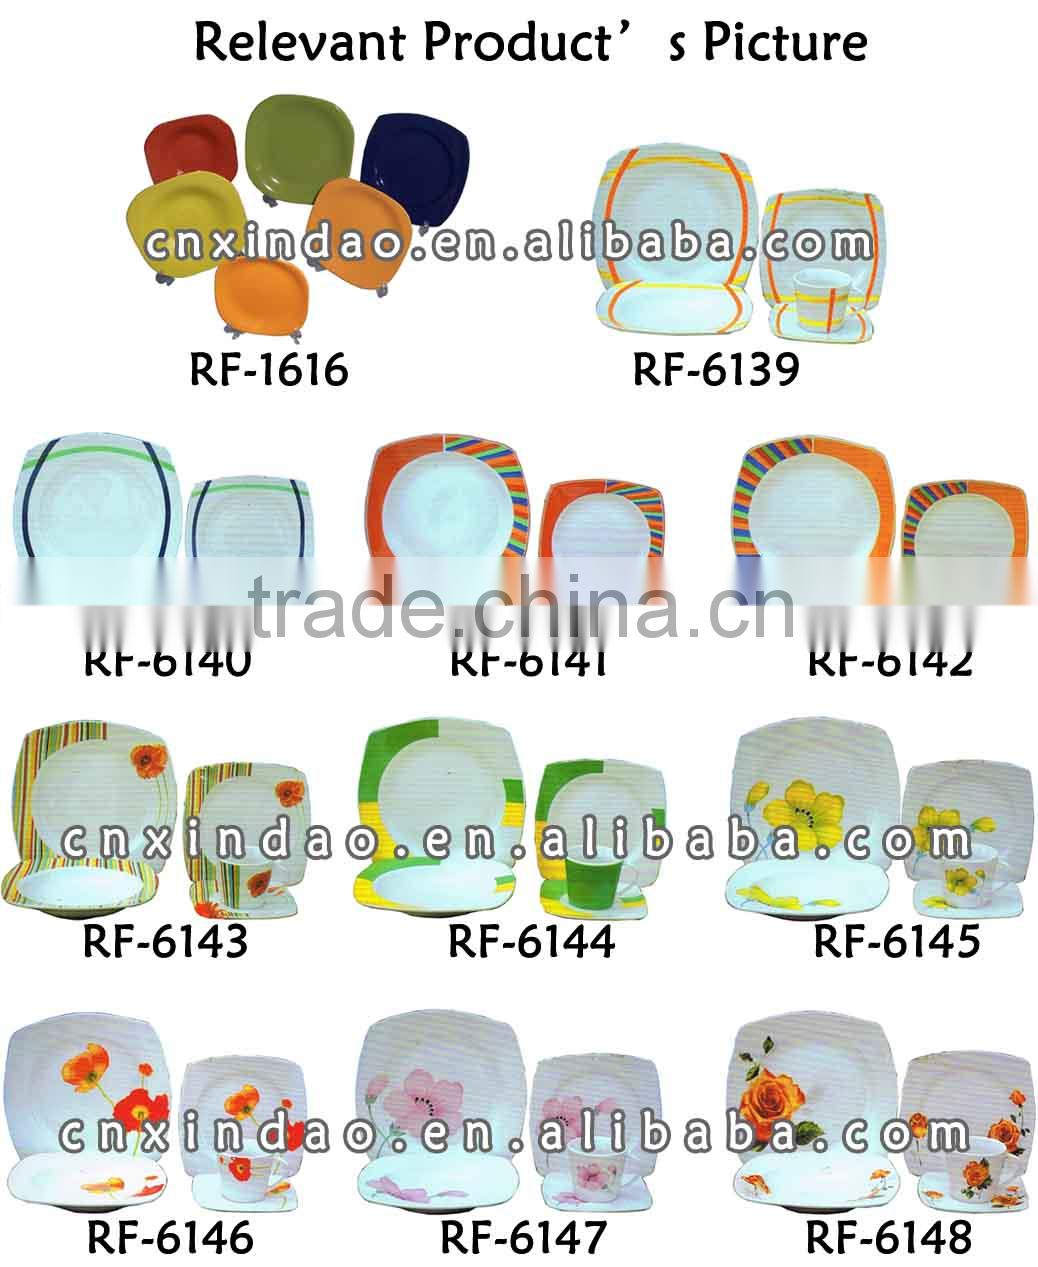 New 2015 Dinner Set with Sqaure Shape for Personalized Ceramic Dinnerware